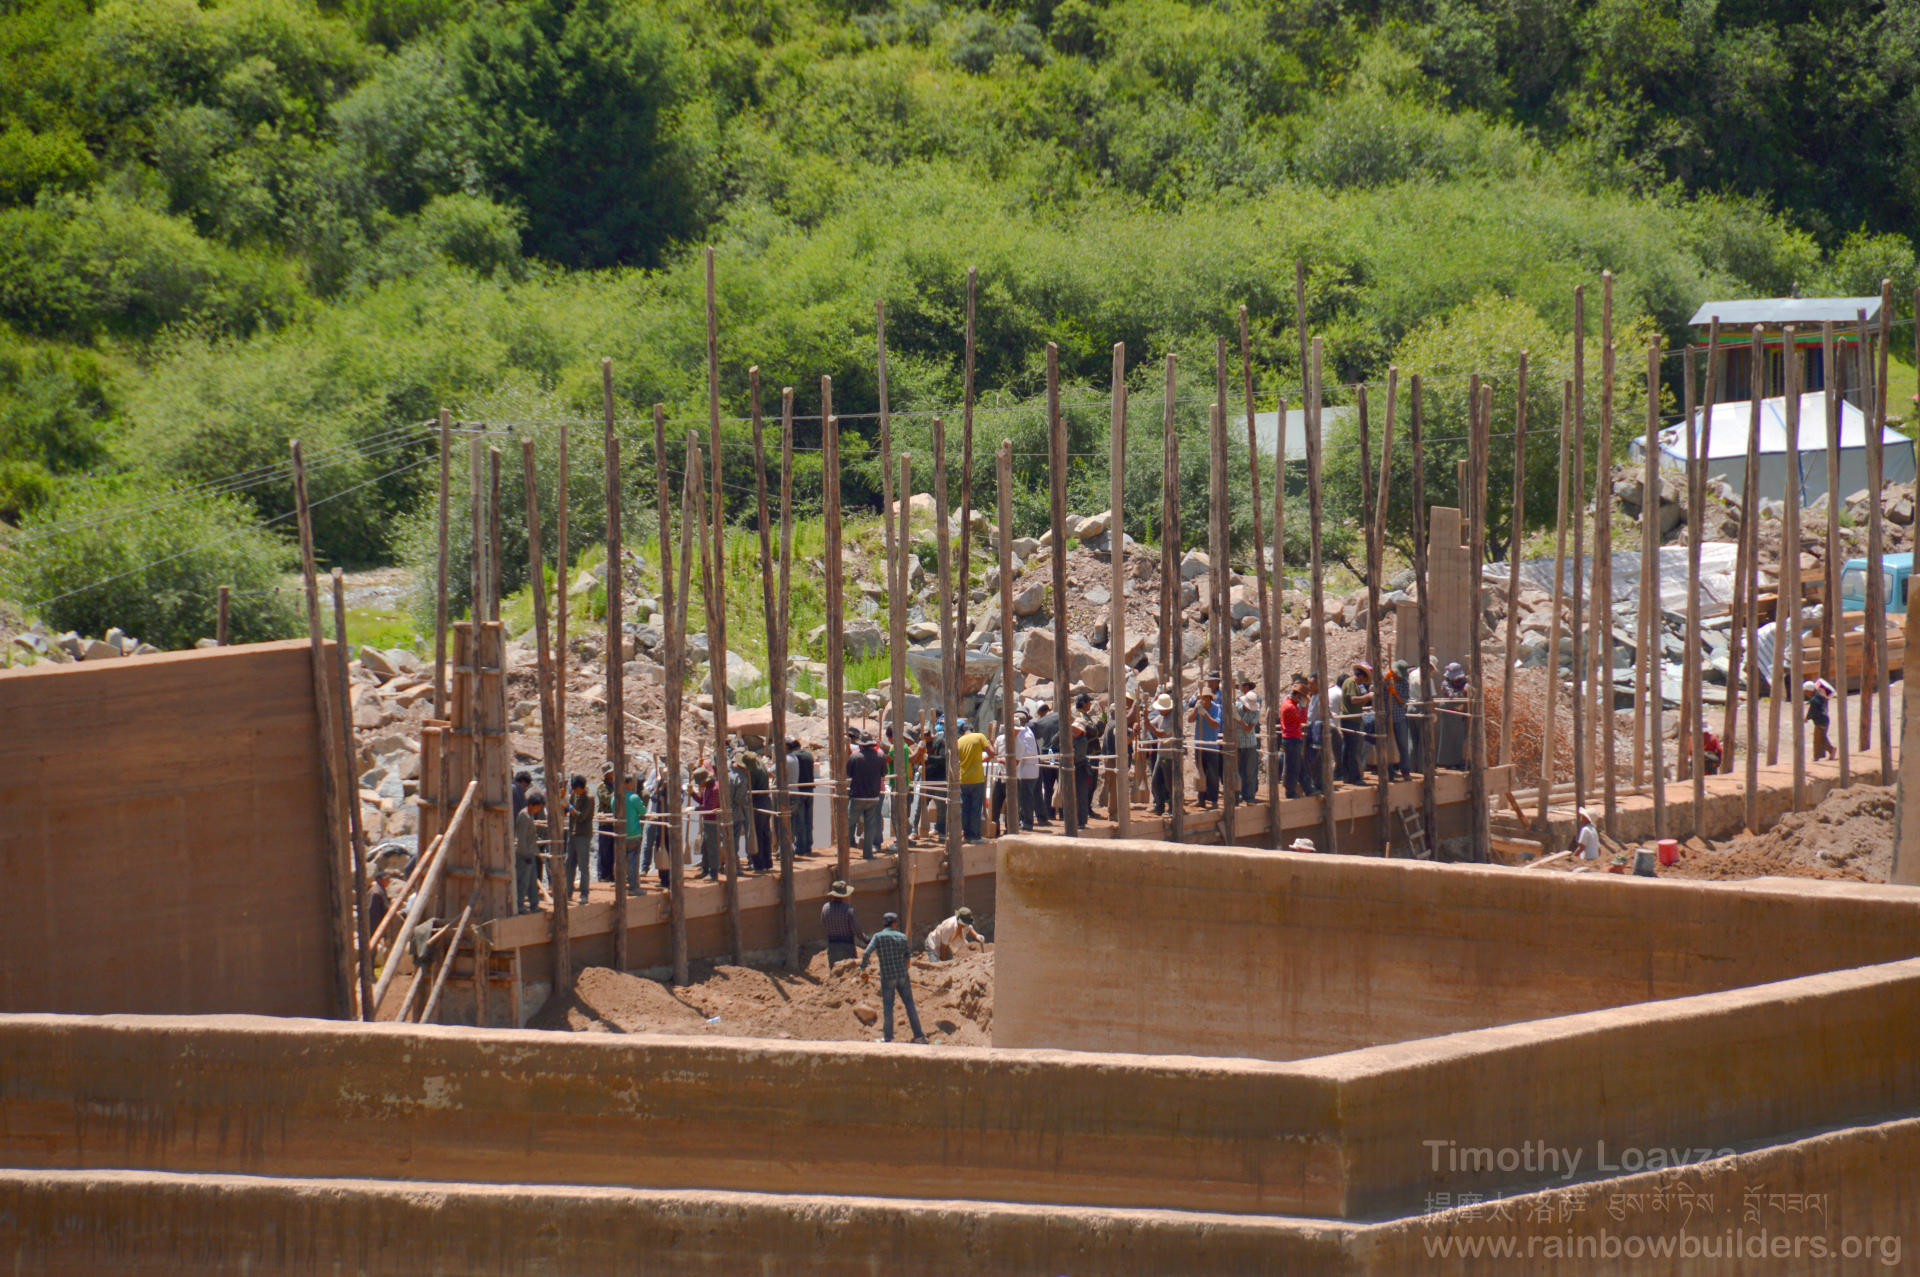 The new complex in the Lhamo Kirti monastery is made of rammed earth. The people standing on the wall are compacting the earth filled into the wooden framework using long heavy poles.